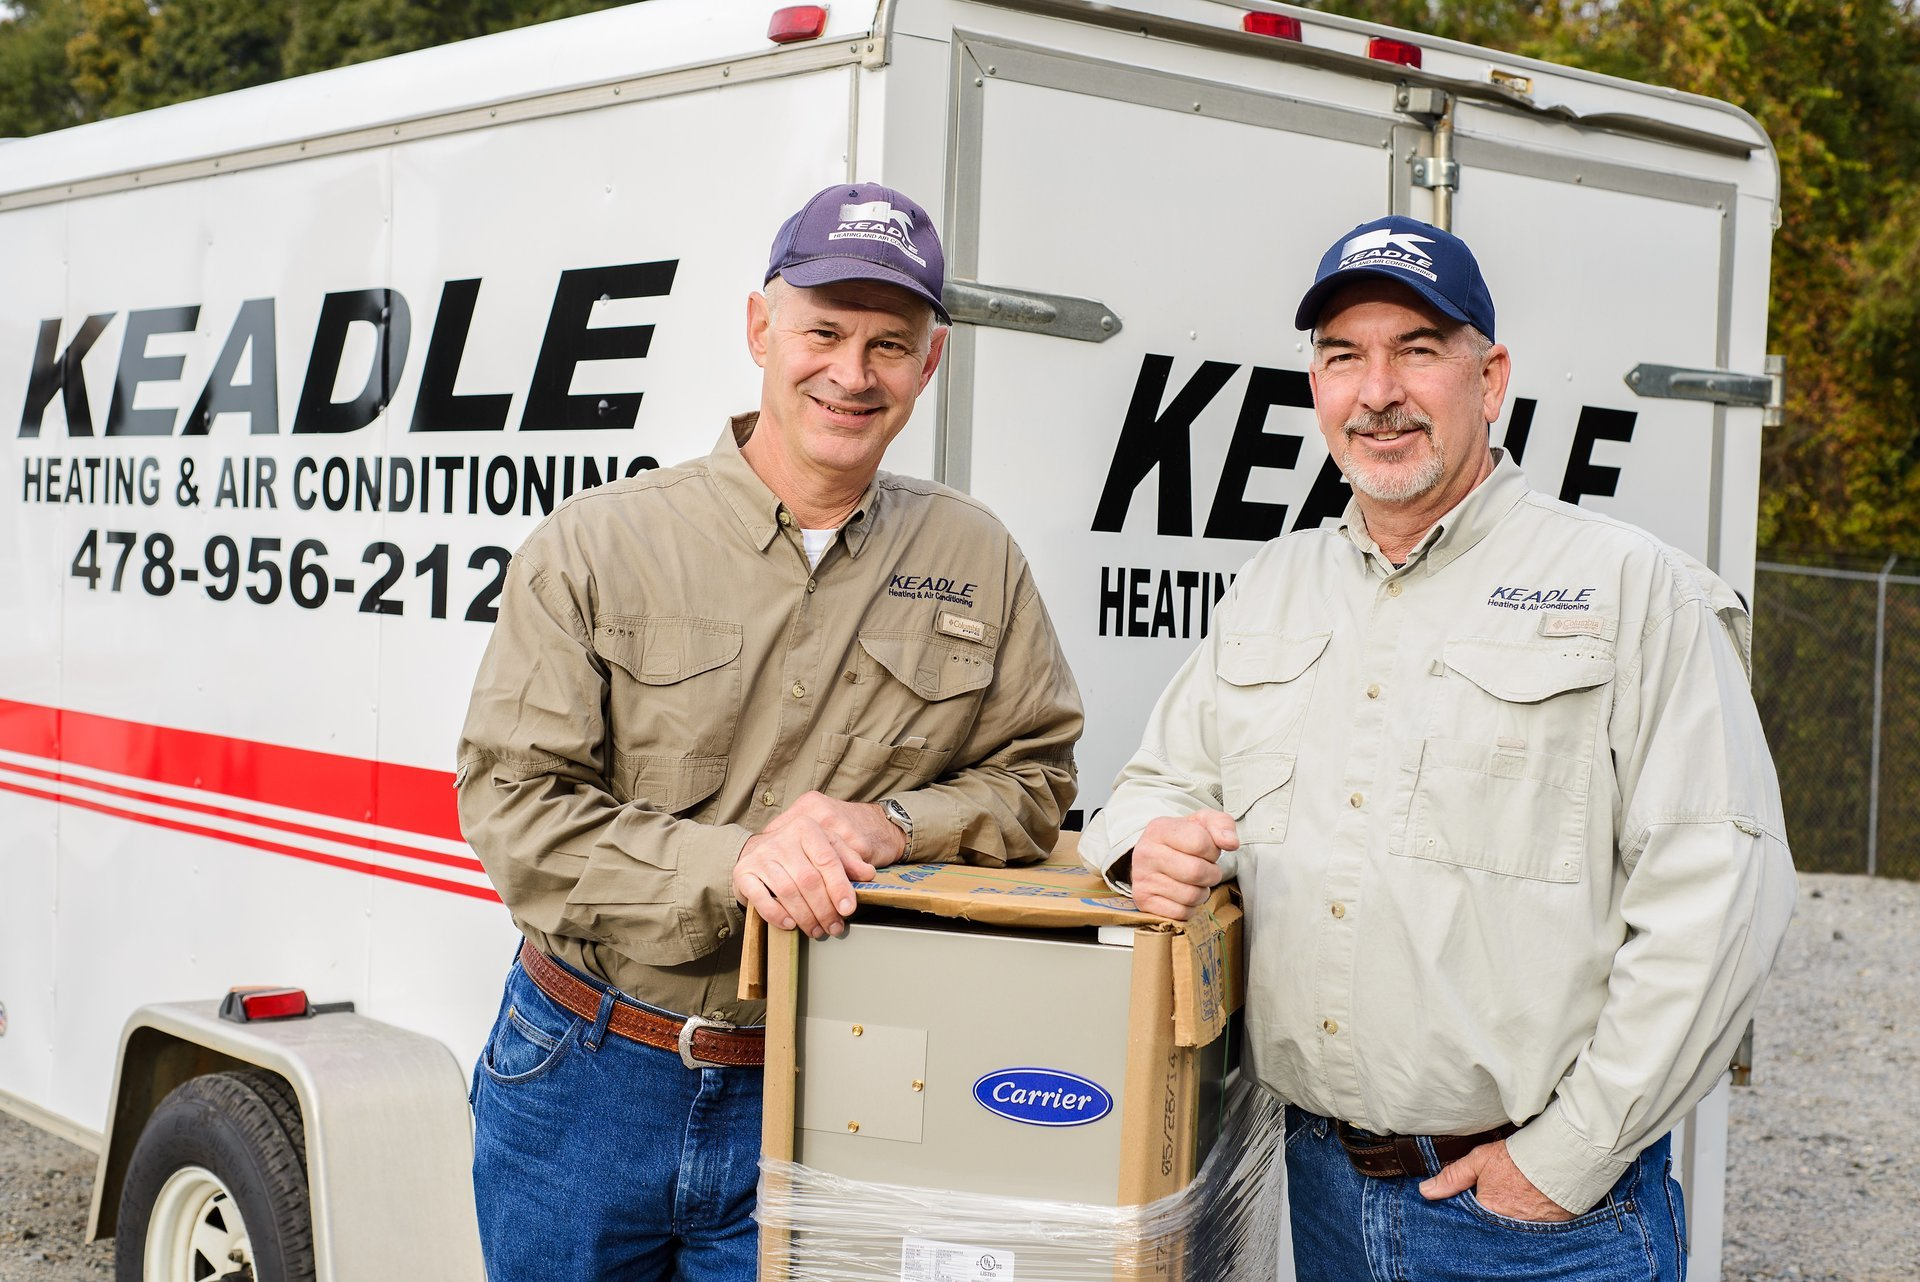 Heating & Air Conditioning Professionals